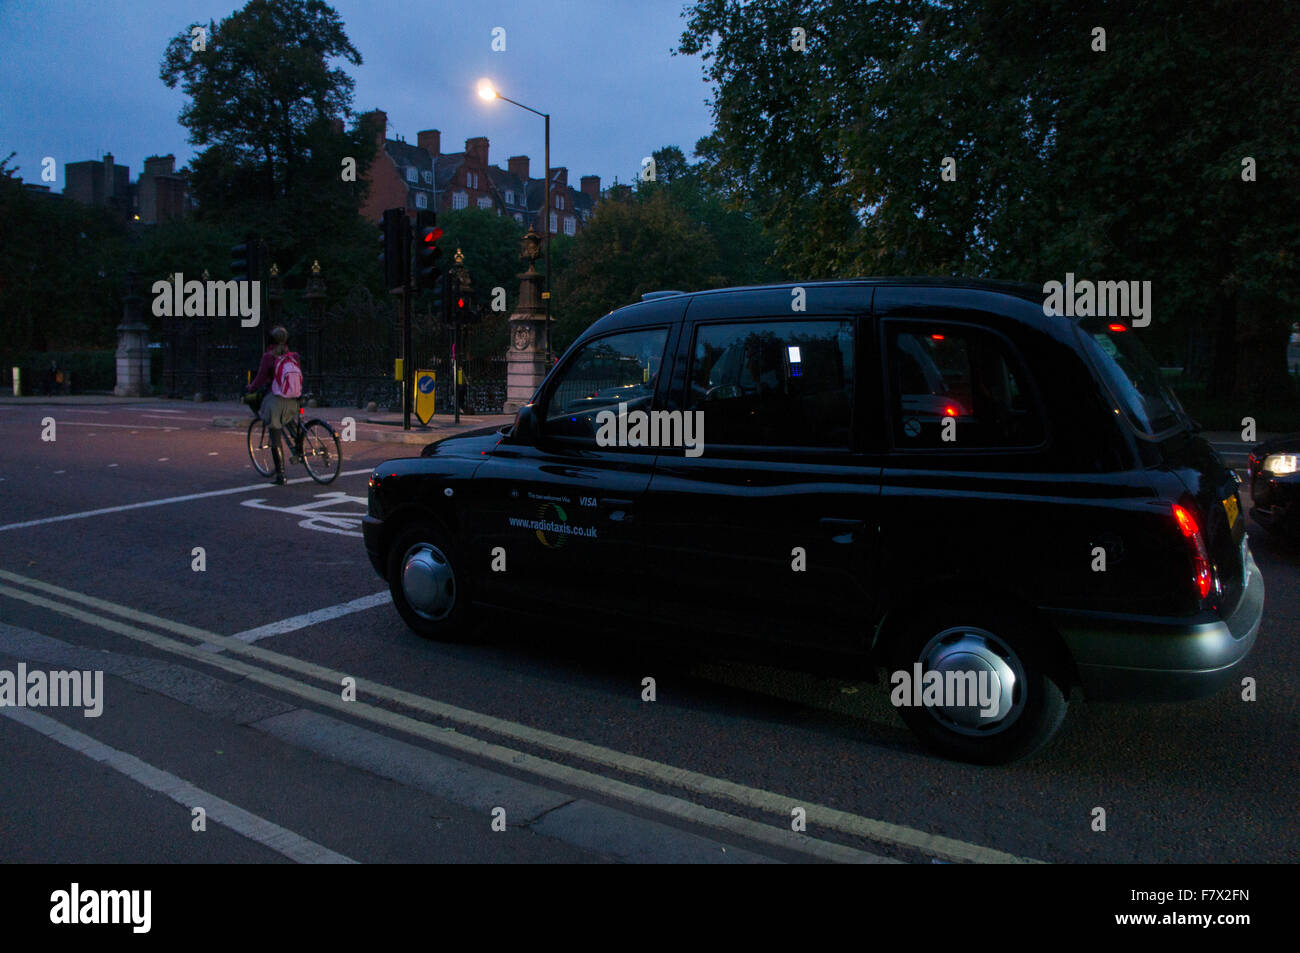 London taxi, hackney carriage, black cab, hack - Stock Image